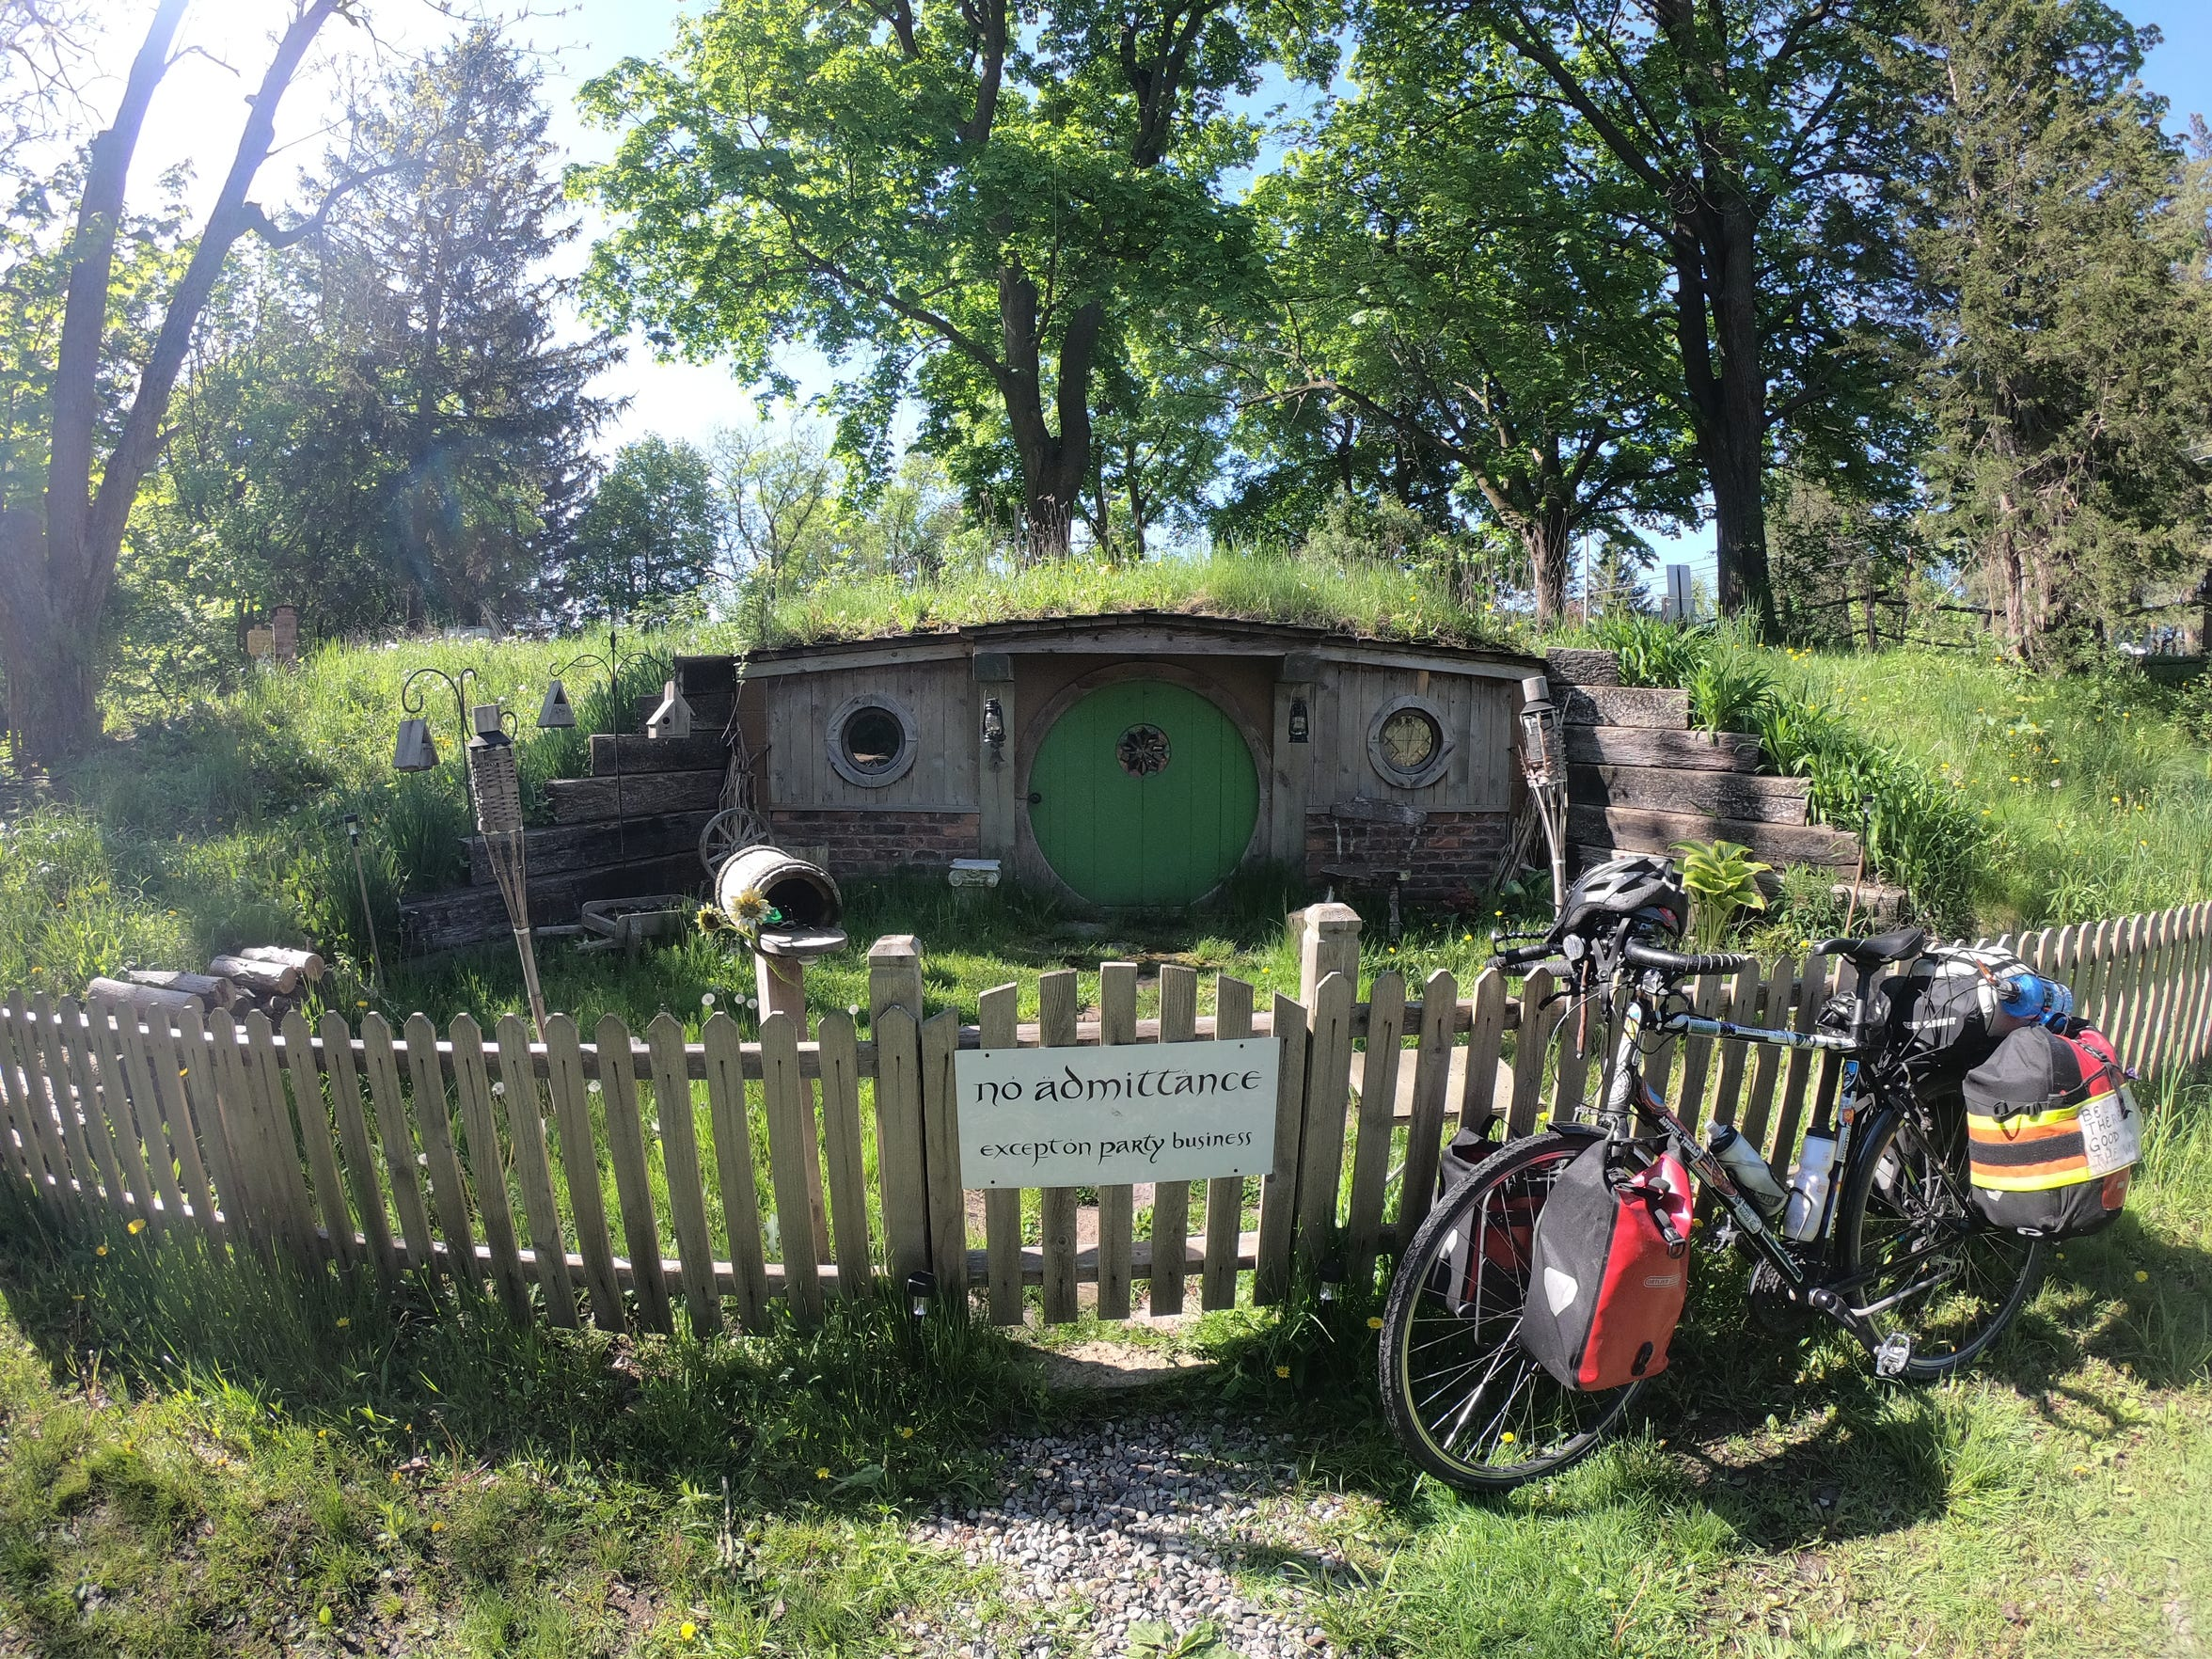 In Yale, Michigan, the bicyclists stayed at the Morrishire, a cozy hobbithole.